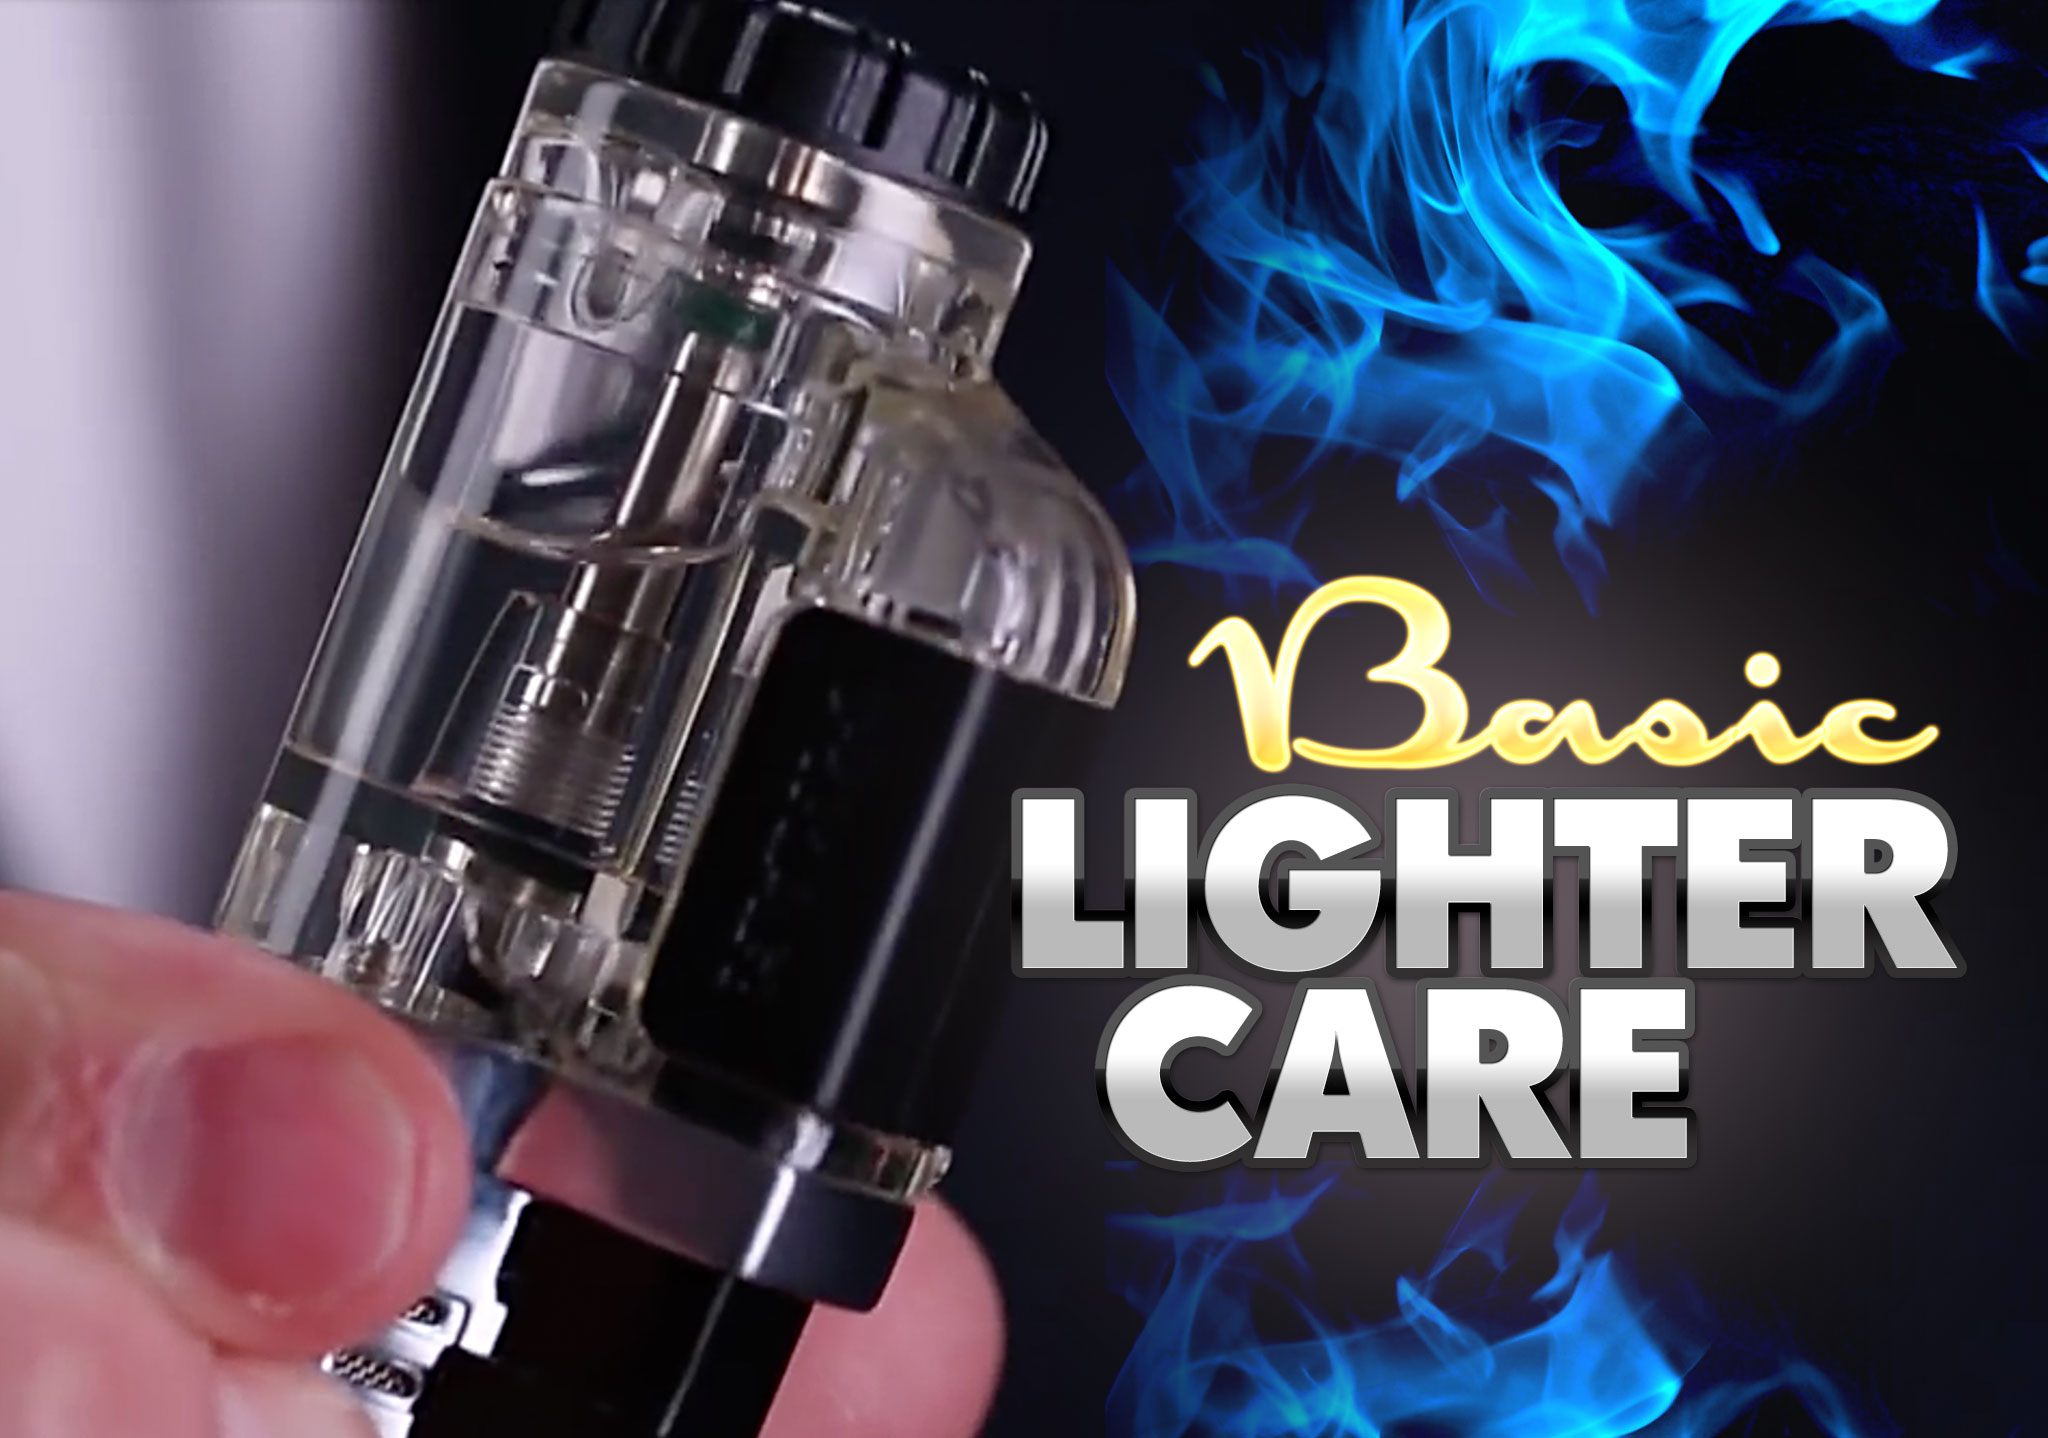 Basic Lighter Care